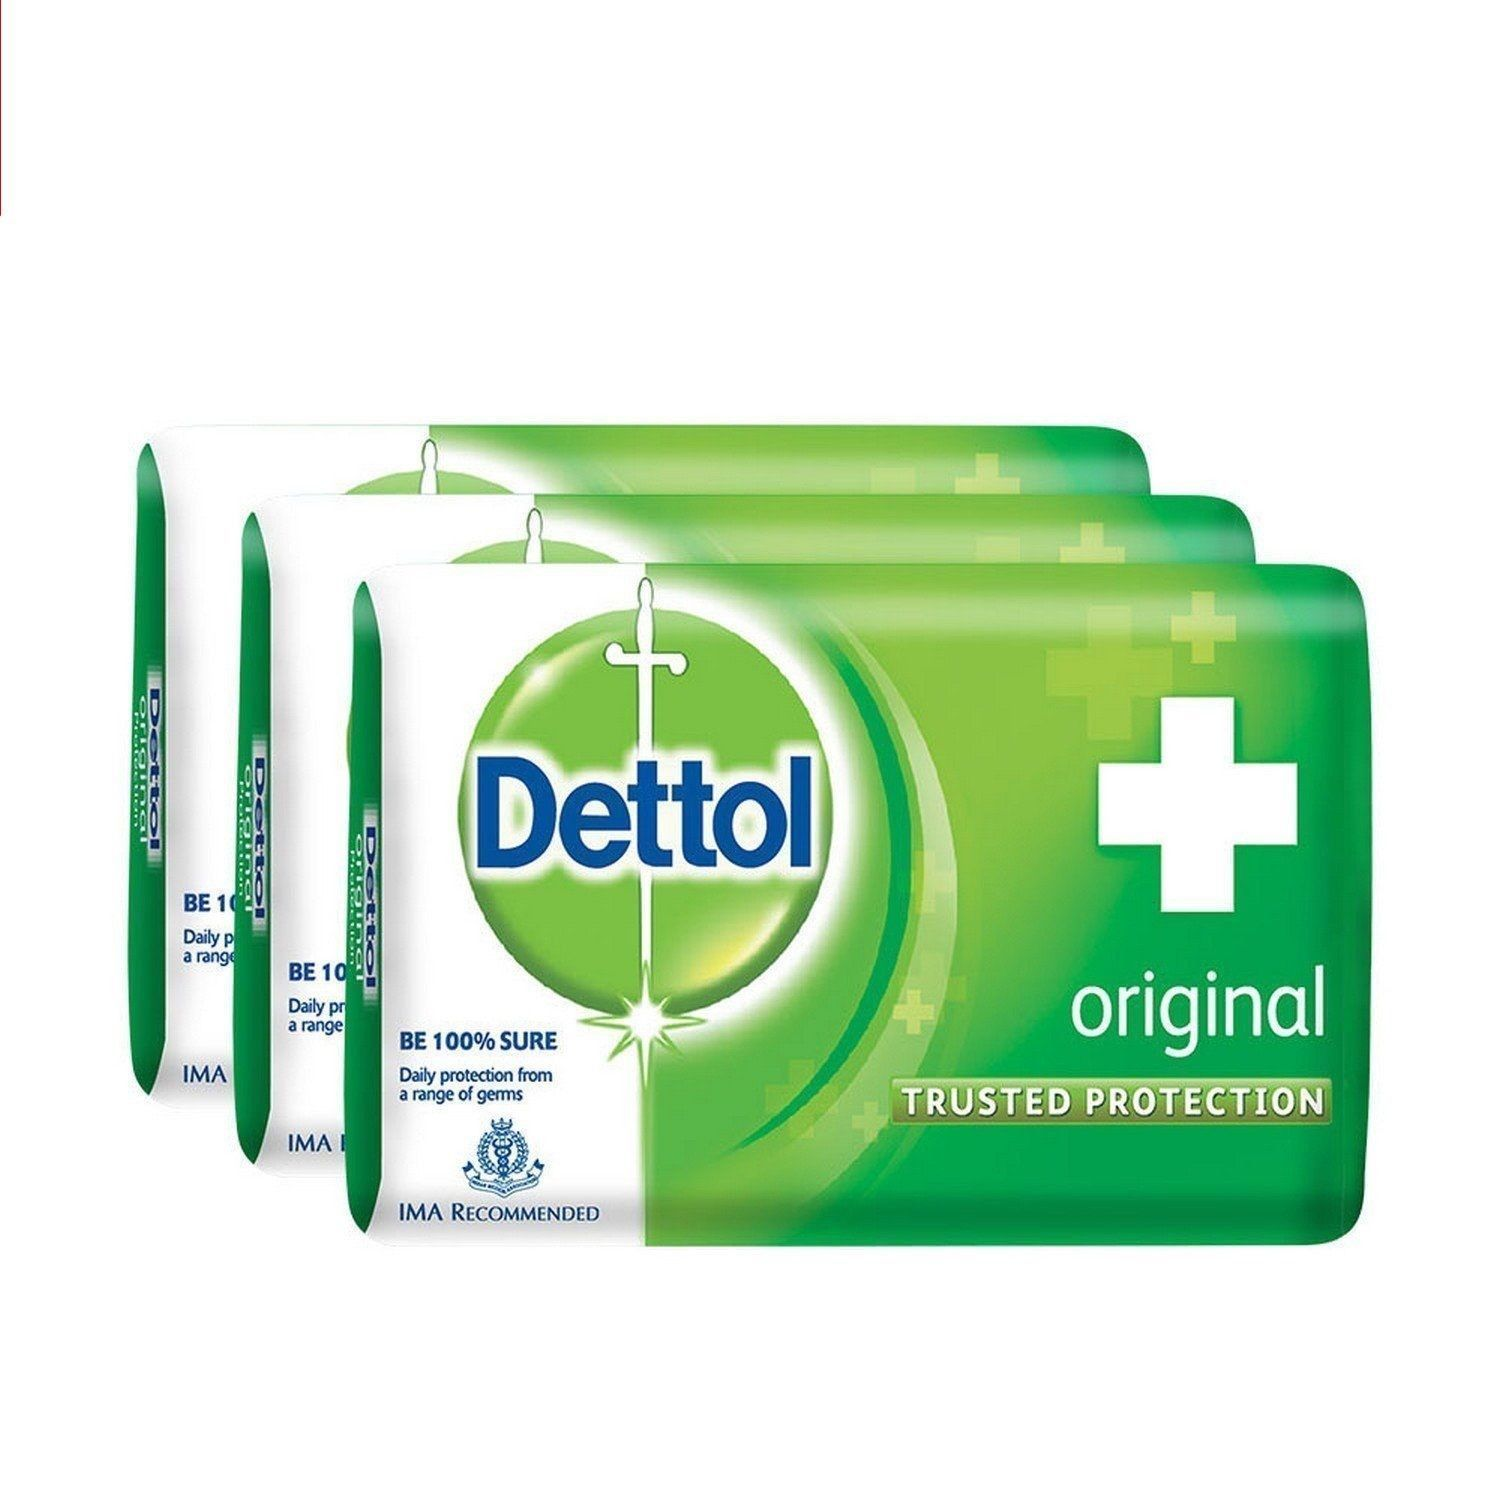 Dettol Orignal Soap Trusted Protection for Family Original 75gm ( pack of 3 )**